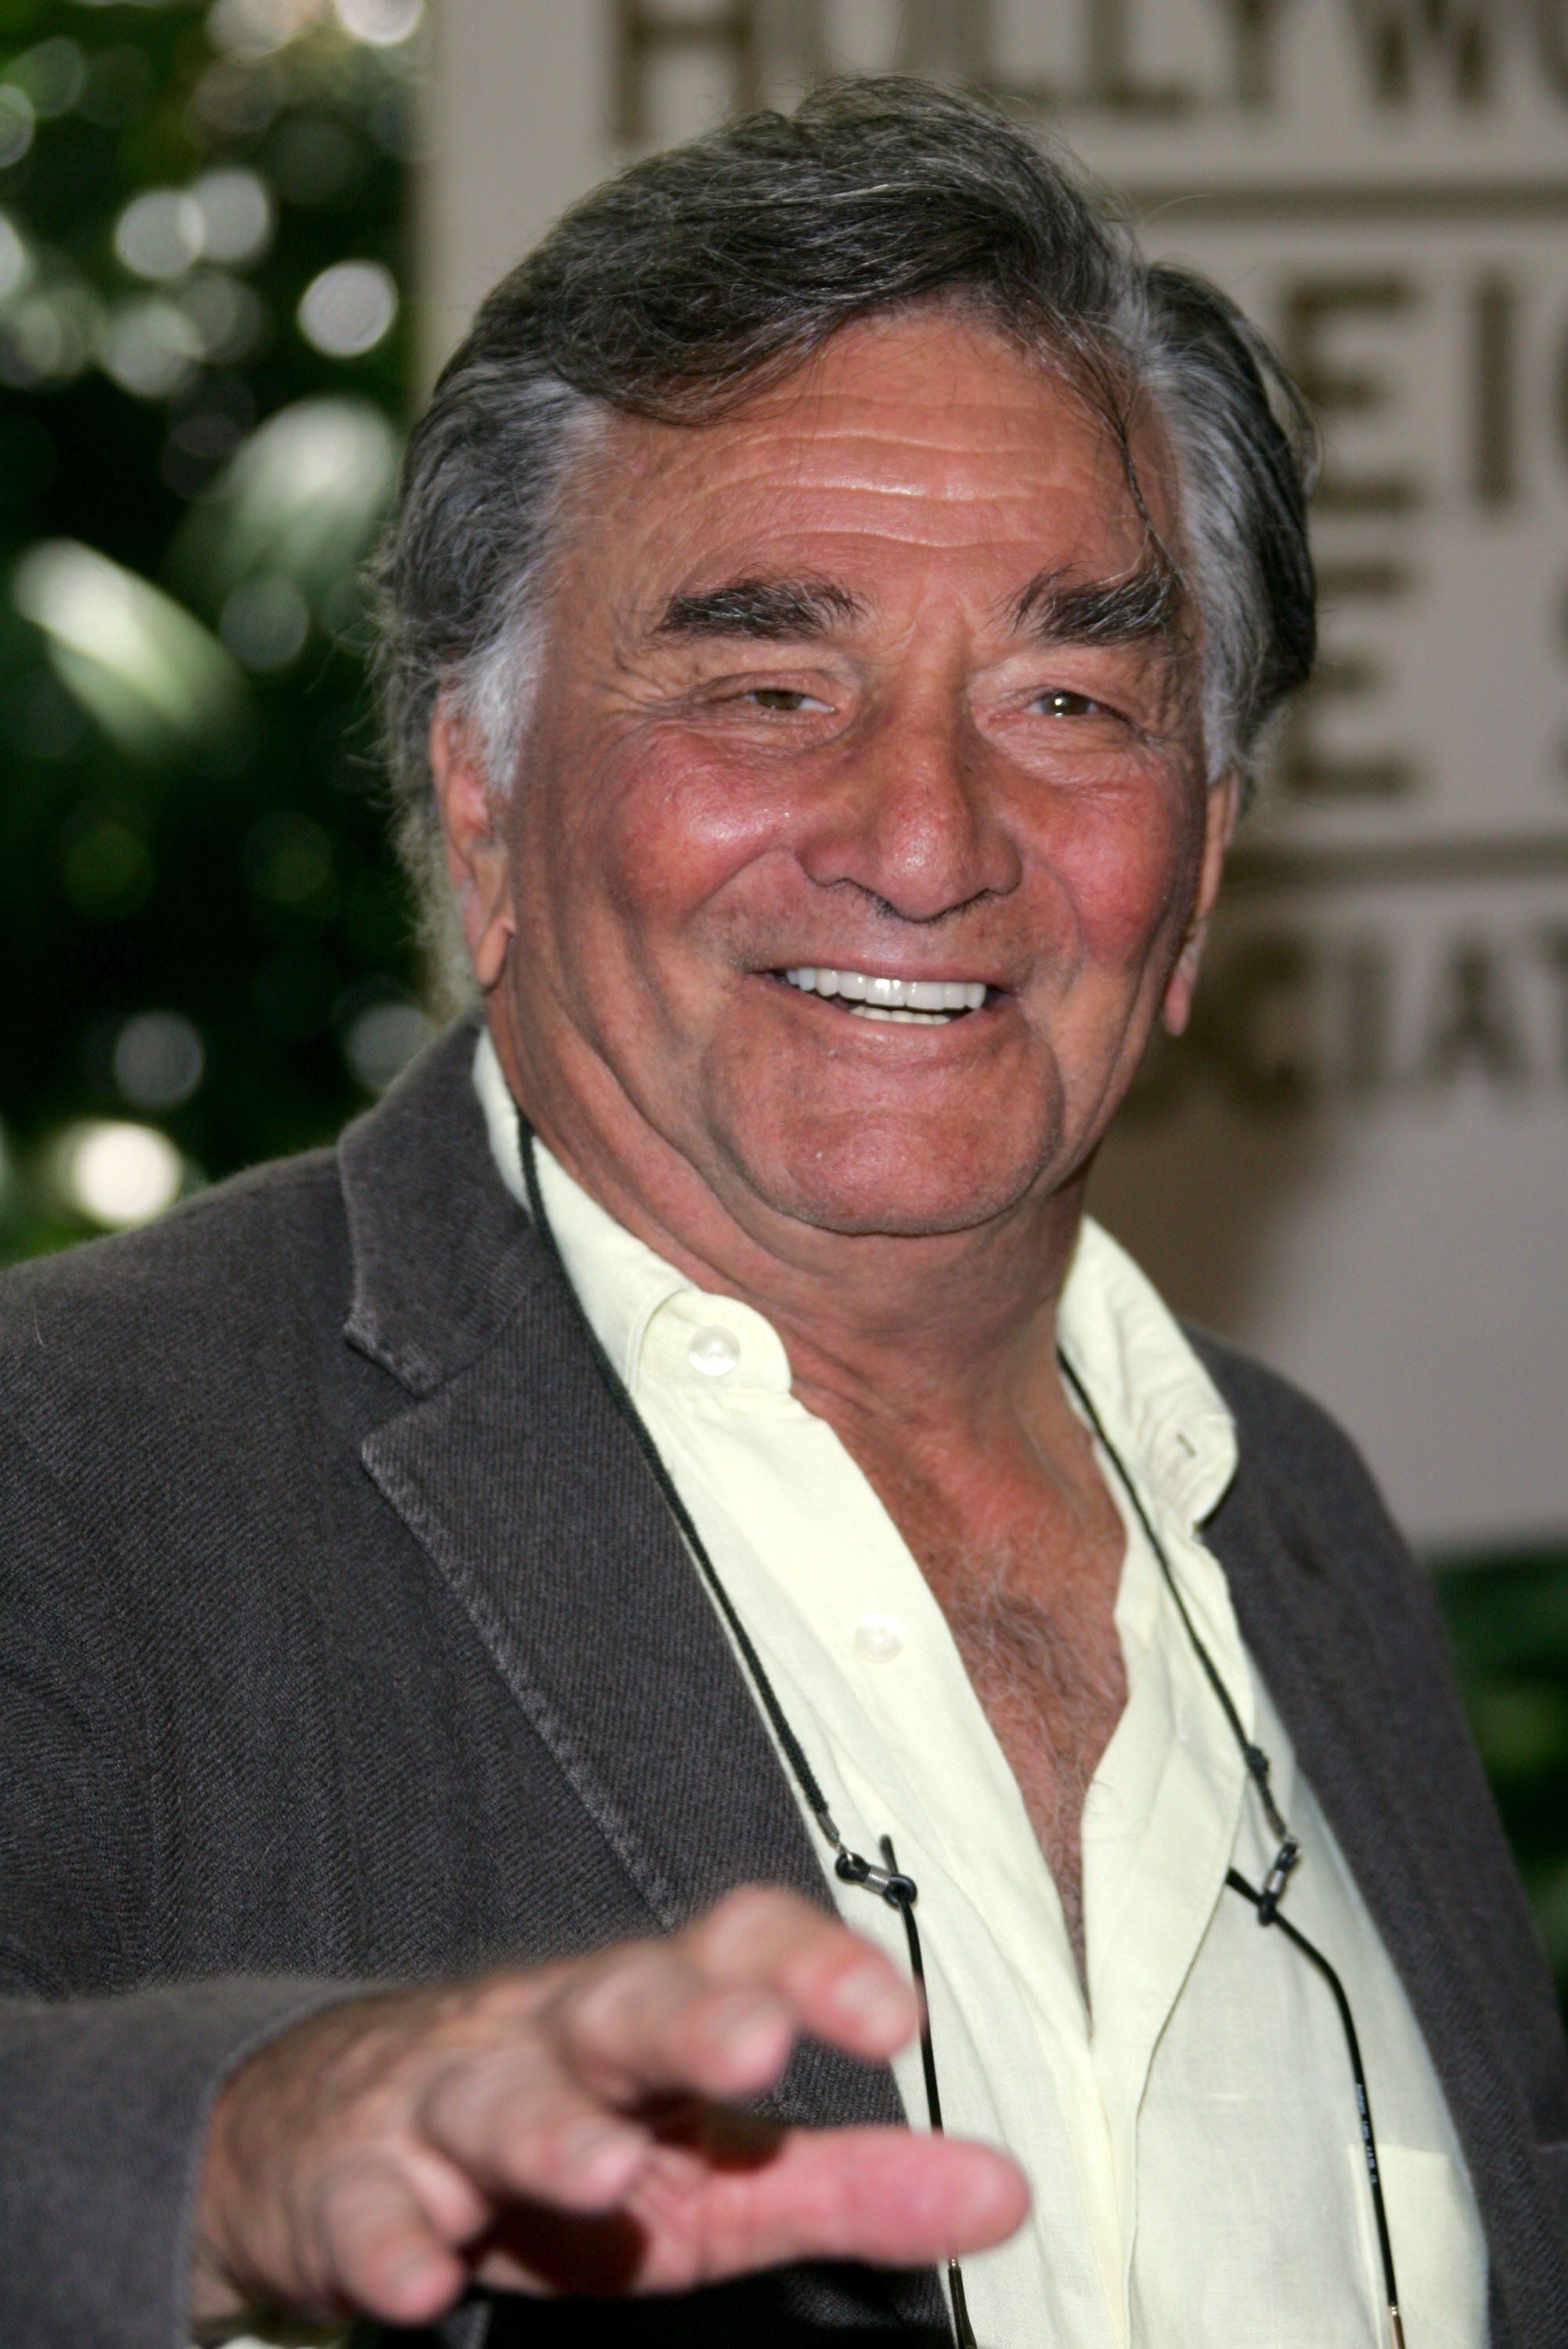 Peter Falk at the 2007 HFPA Installation Luncheon on August 9, 2007 | Photo: GettyImages